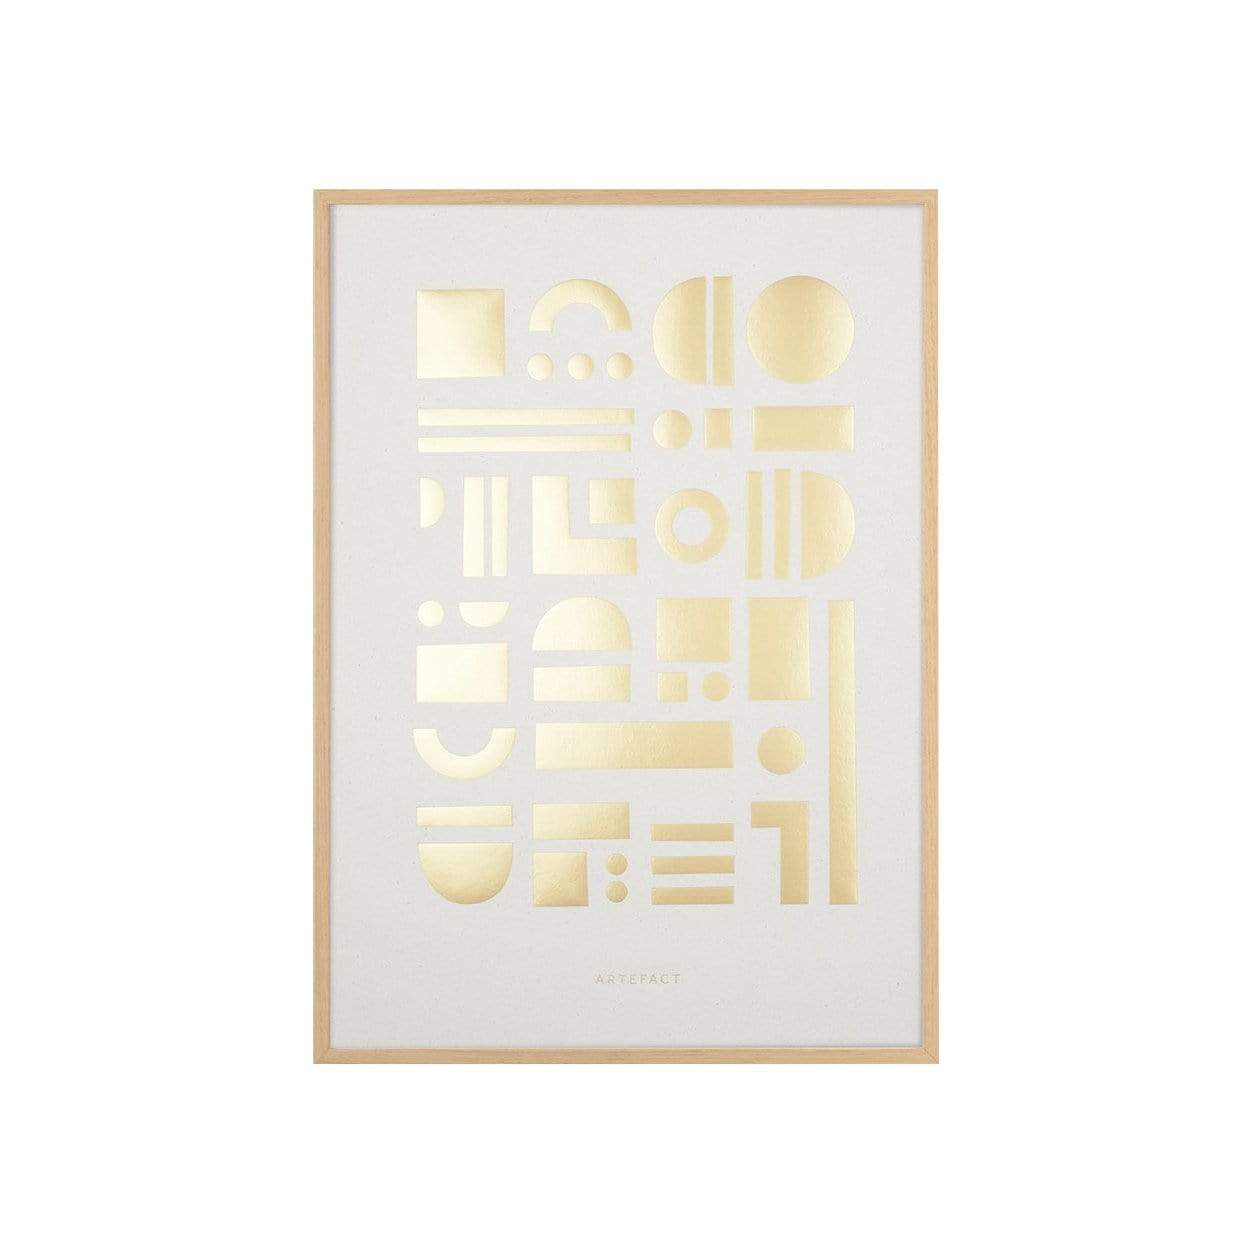 Tom Pigeon Photography + Prints Artefact Brass Art Print